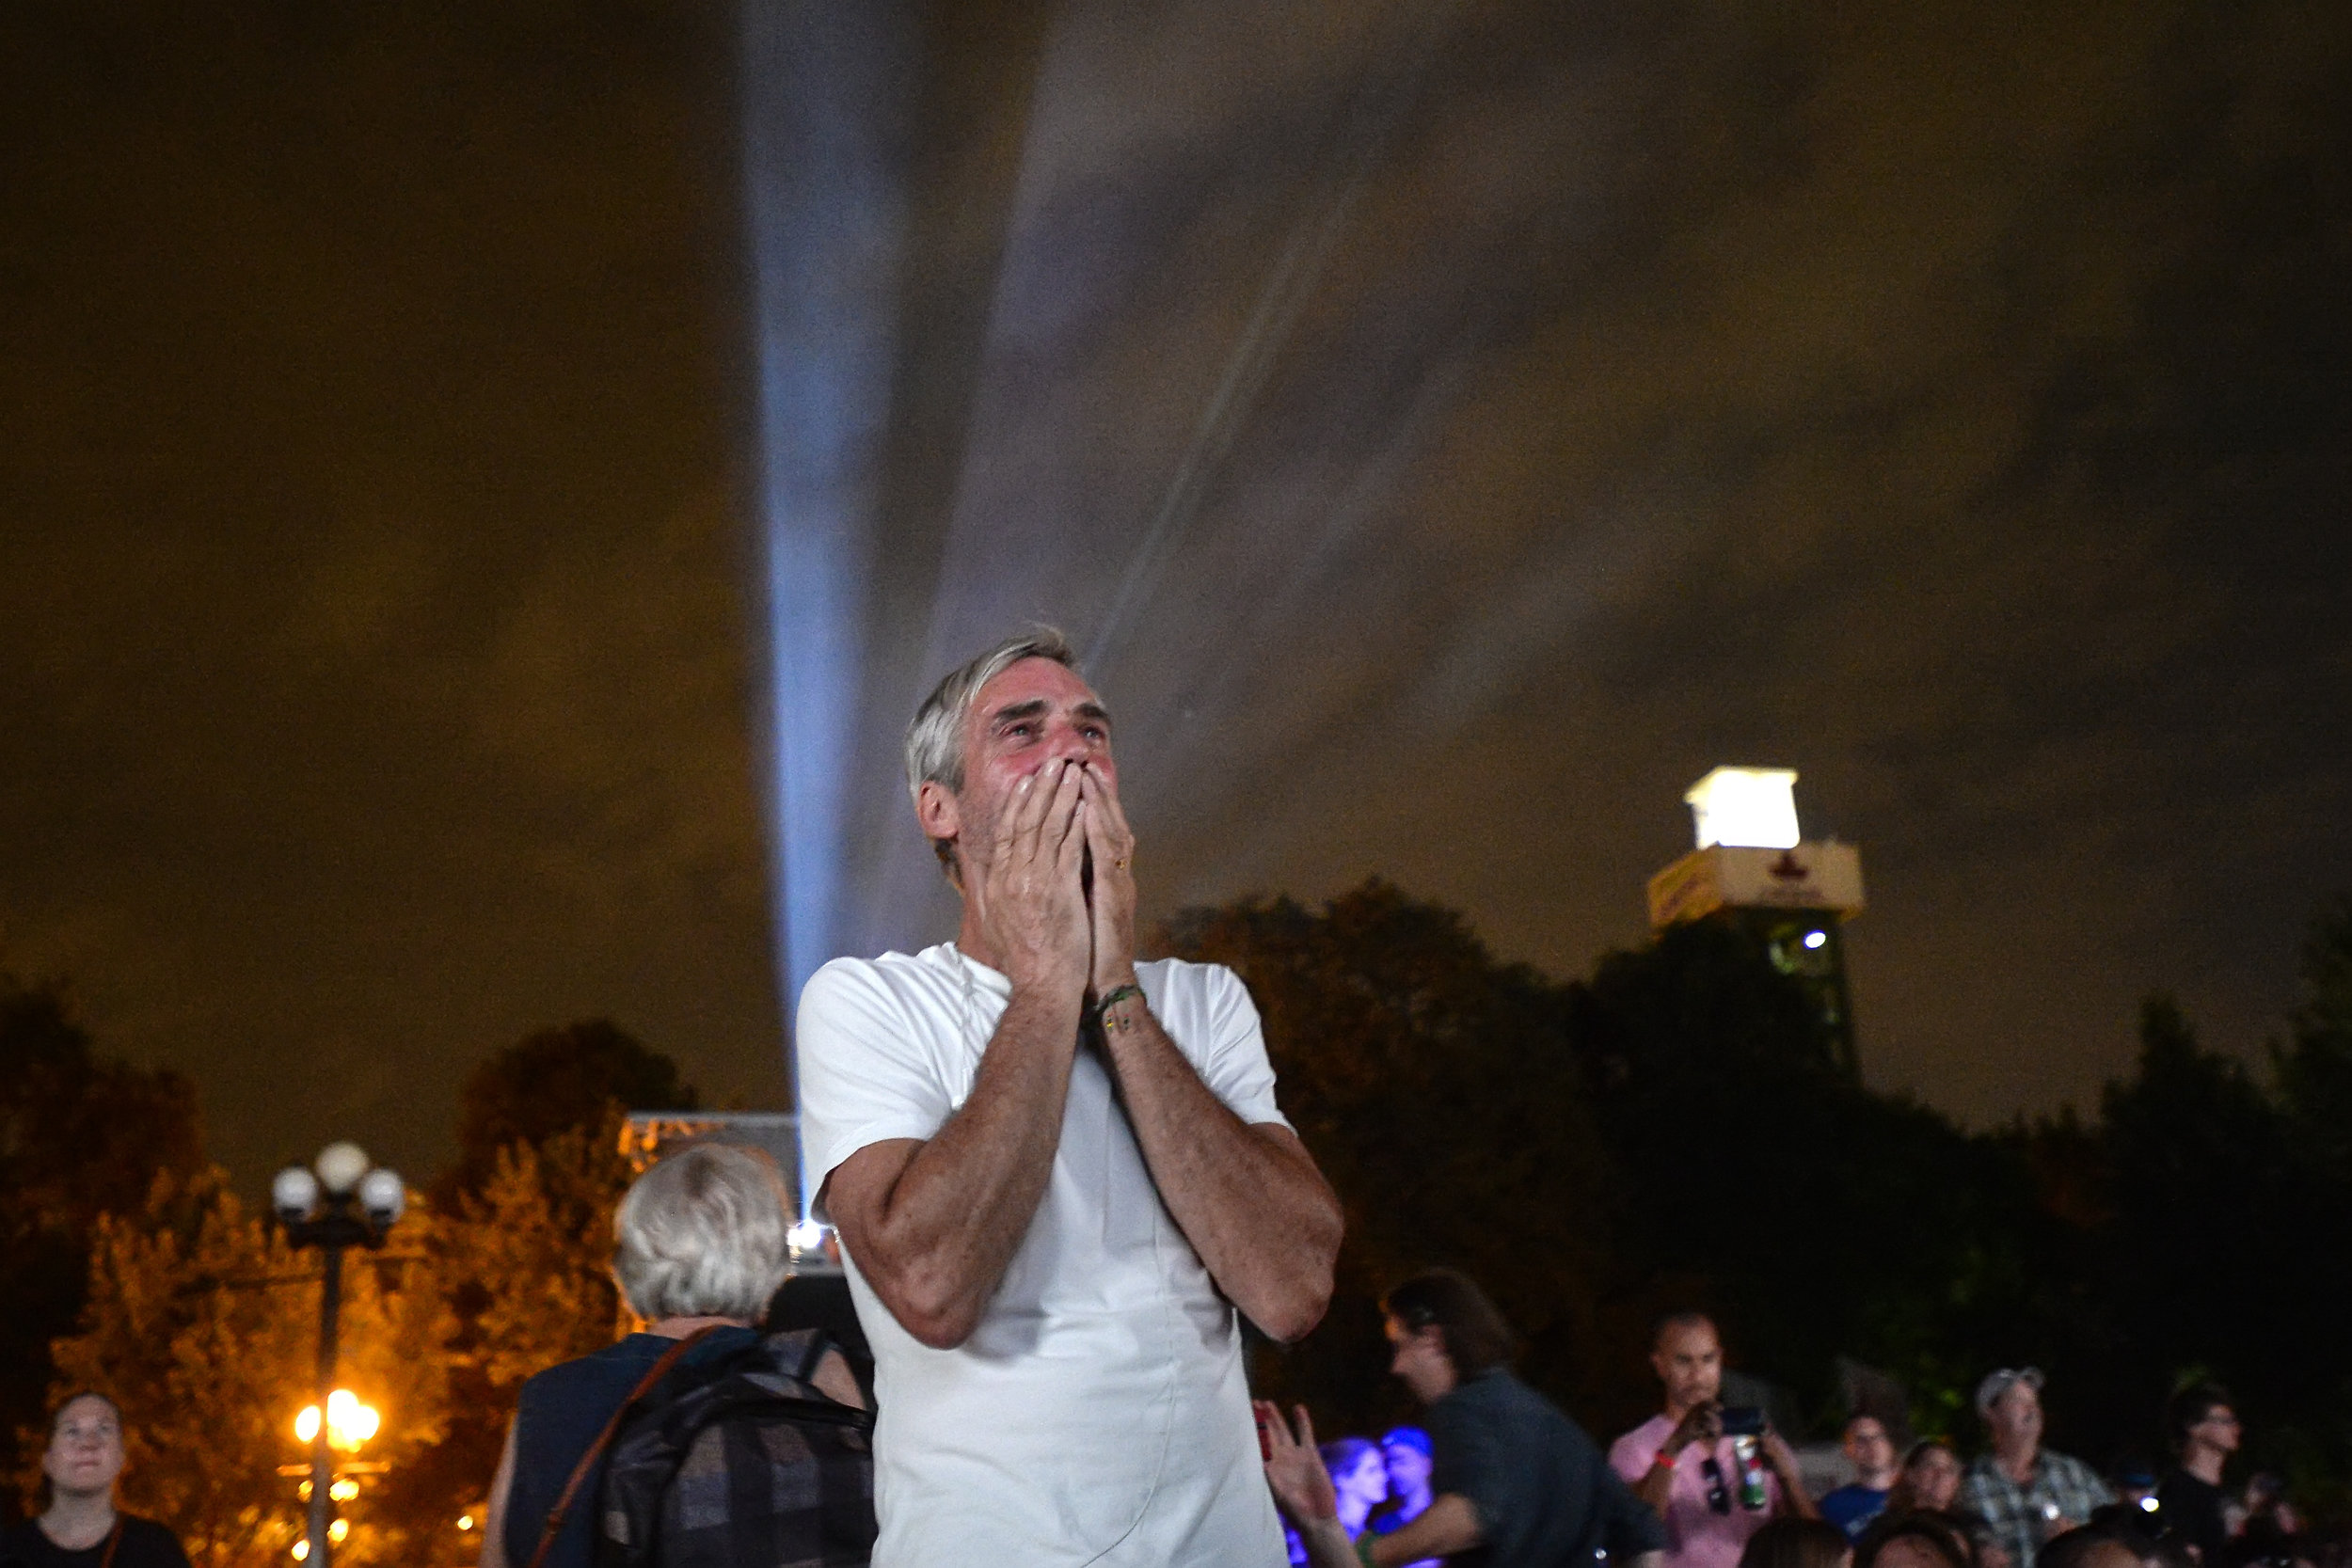 William Grossmith gets emotional during the live broadcast of the final Tragically Hip concert at the Toronto Star Bandshell at the CNE in Toronto, Ont. on August 20, 2016.